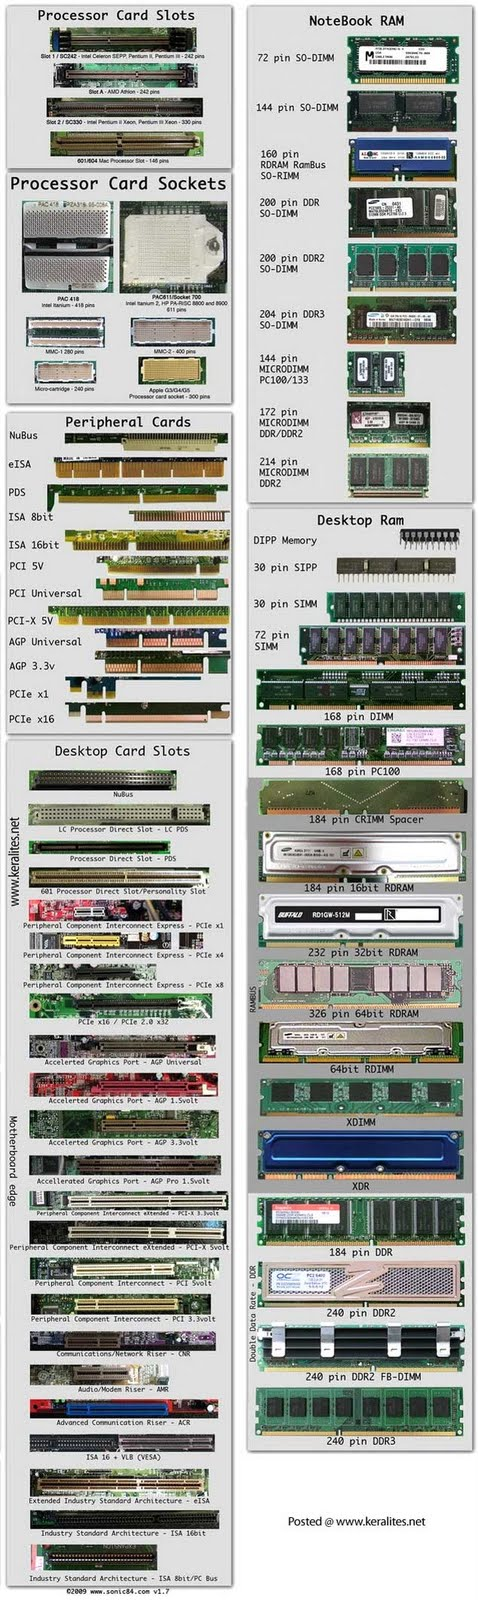 Computer Hardware Chart Poster Computer Hardware Chart Poster